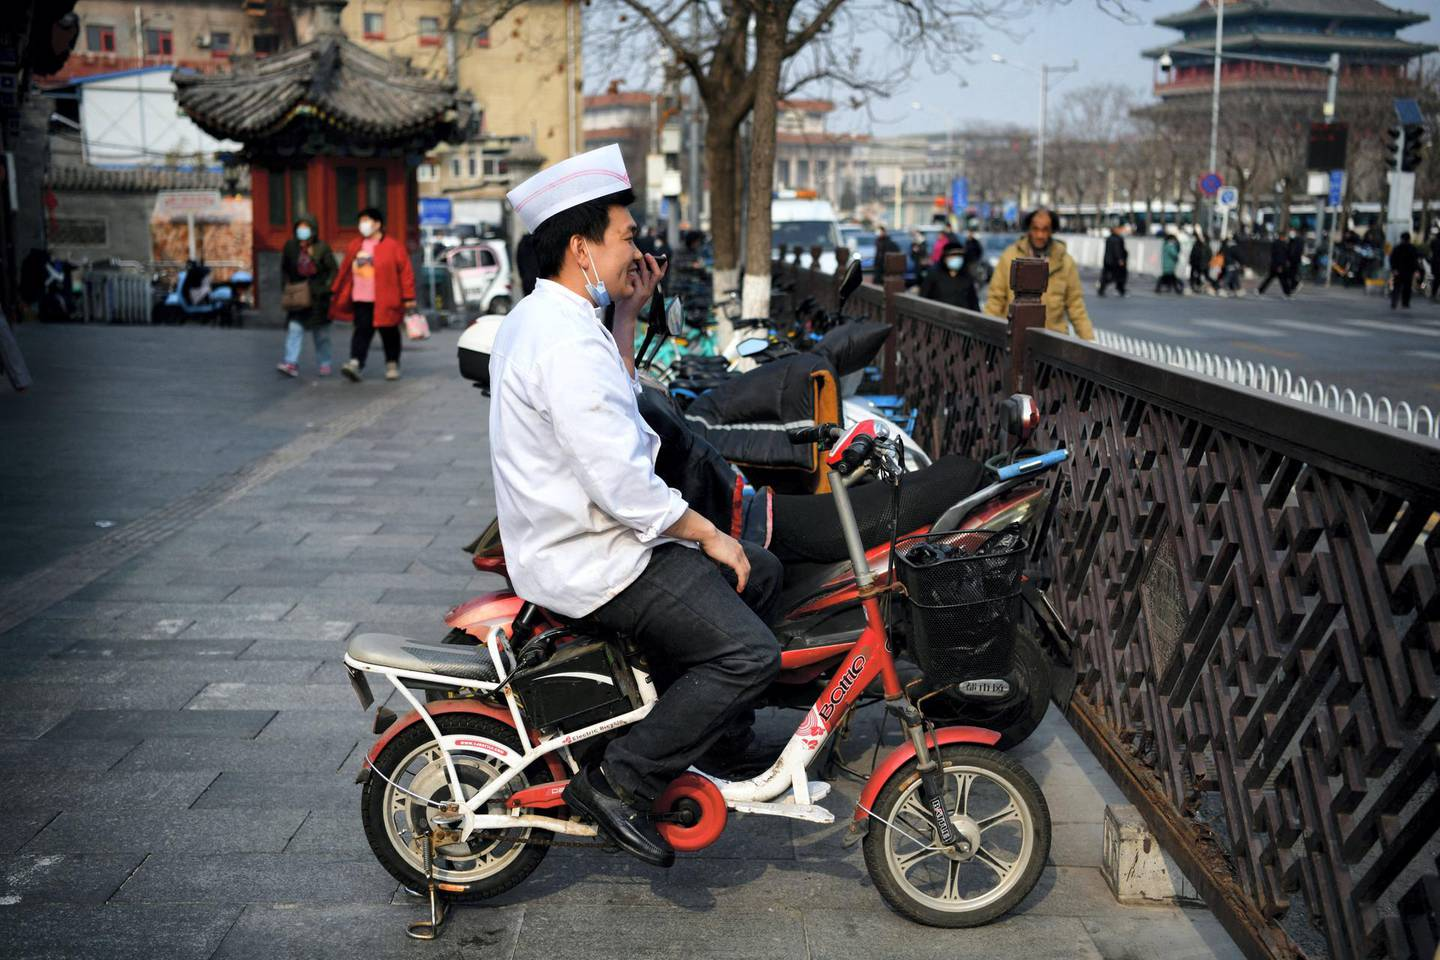 A chef sitting on an electric bike makes a phone call in Beijing on March 8, 2021. (Photo by GREG BAKER / AFP)